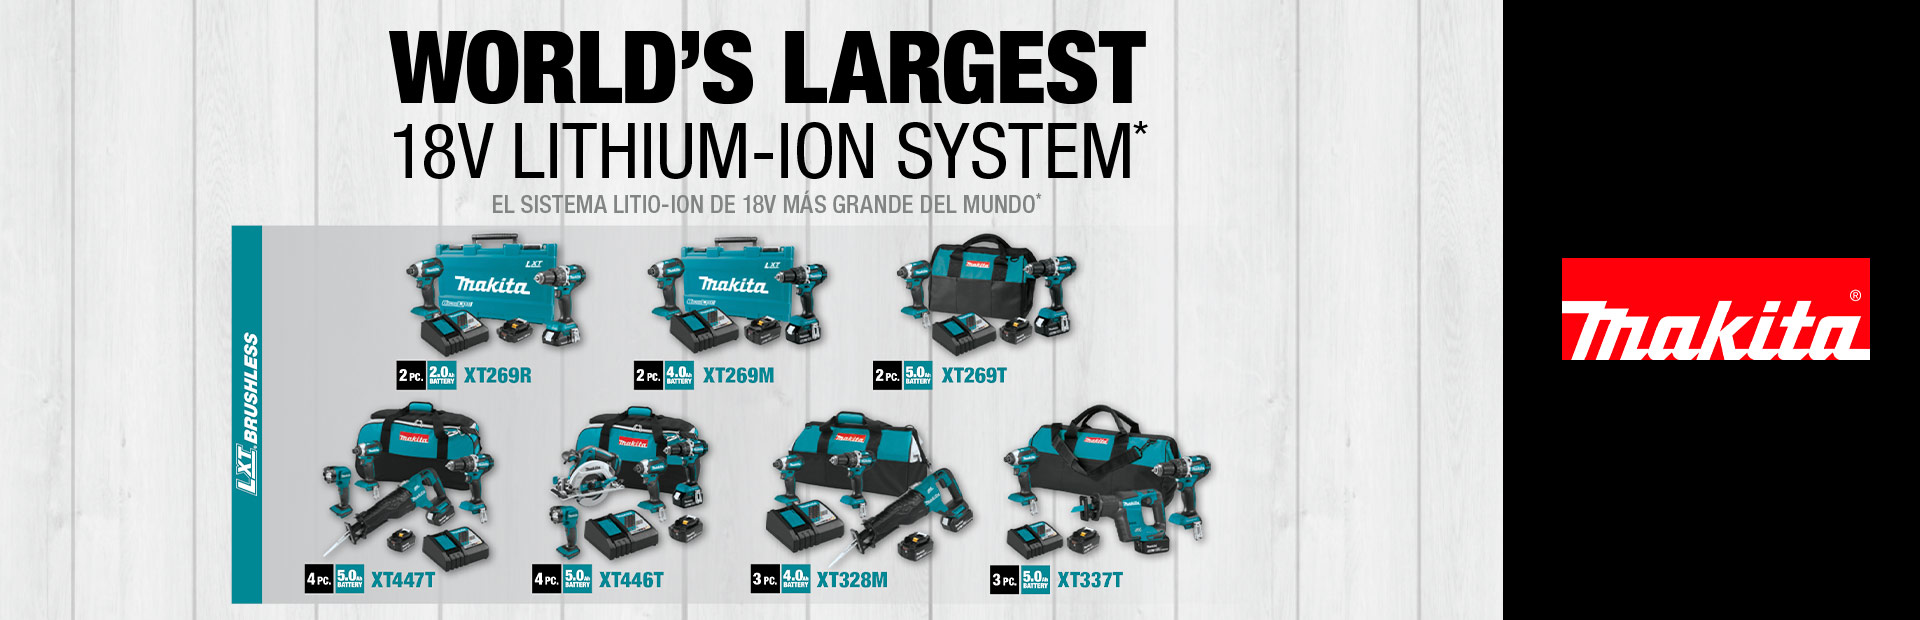 Makita: World's Largest 18v Lithium-Ion System